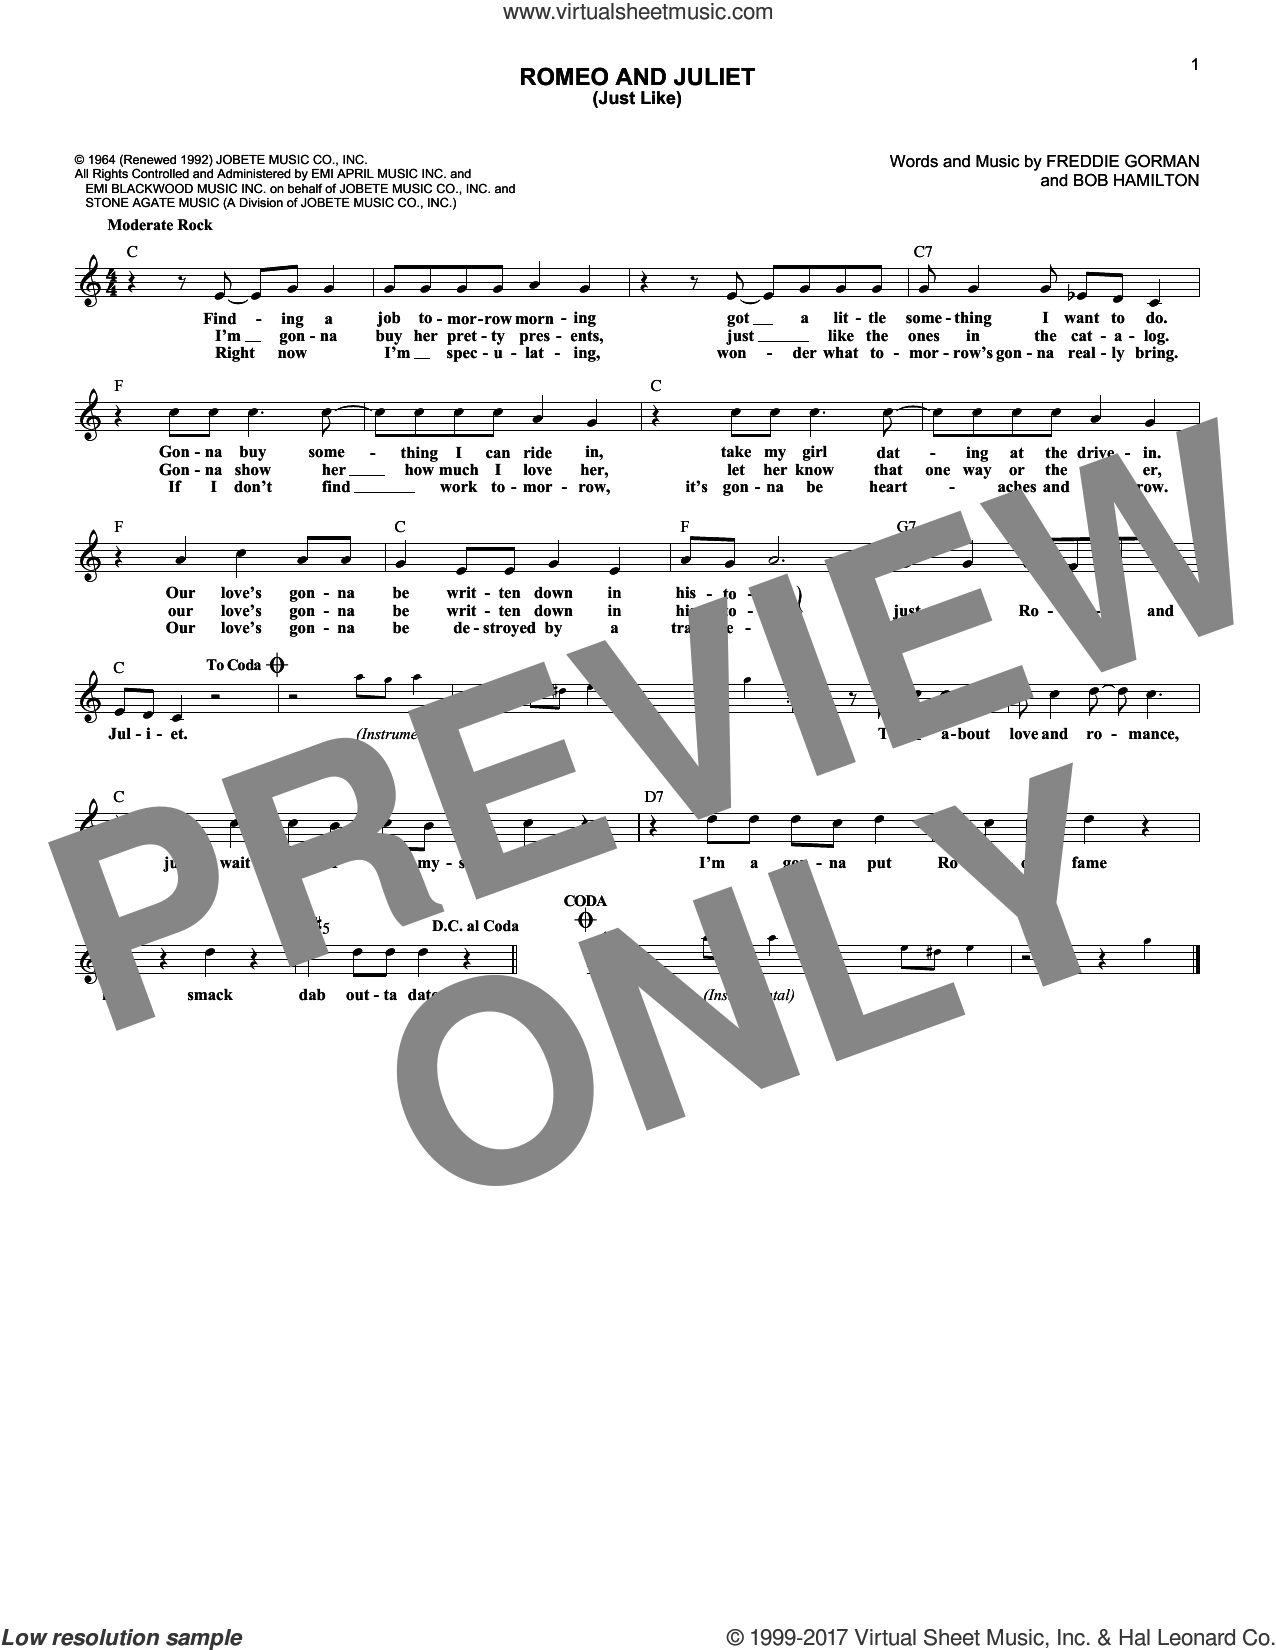 Romeo and Juliet (Just Like) sheet music for voice and other instruments (fake book) by Reflections. Score Image Preview.